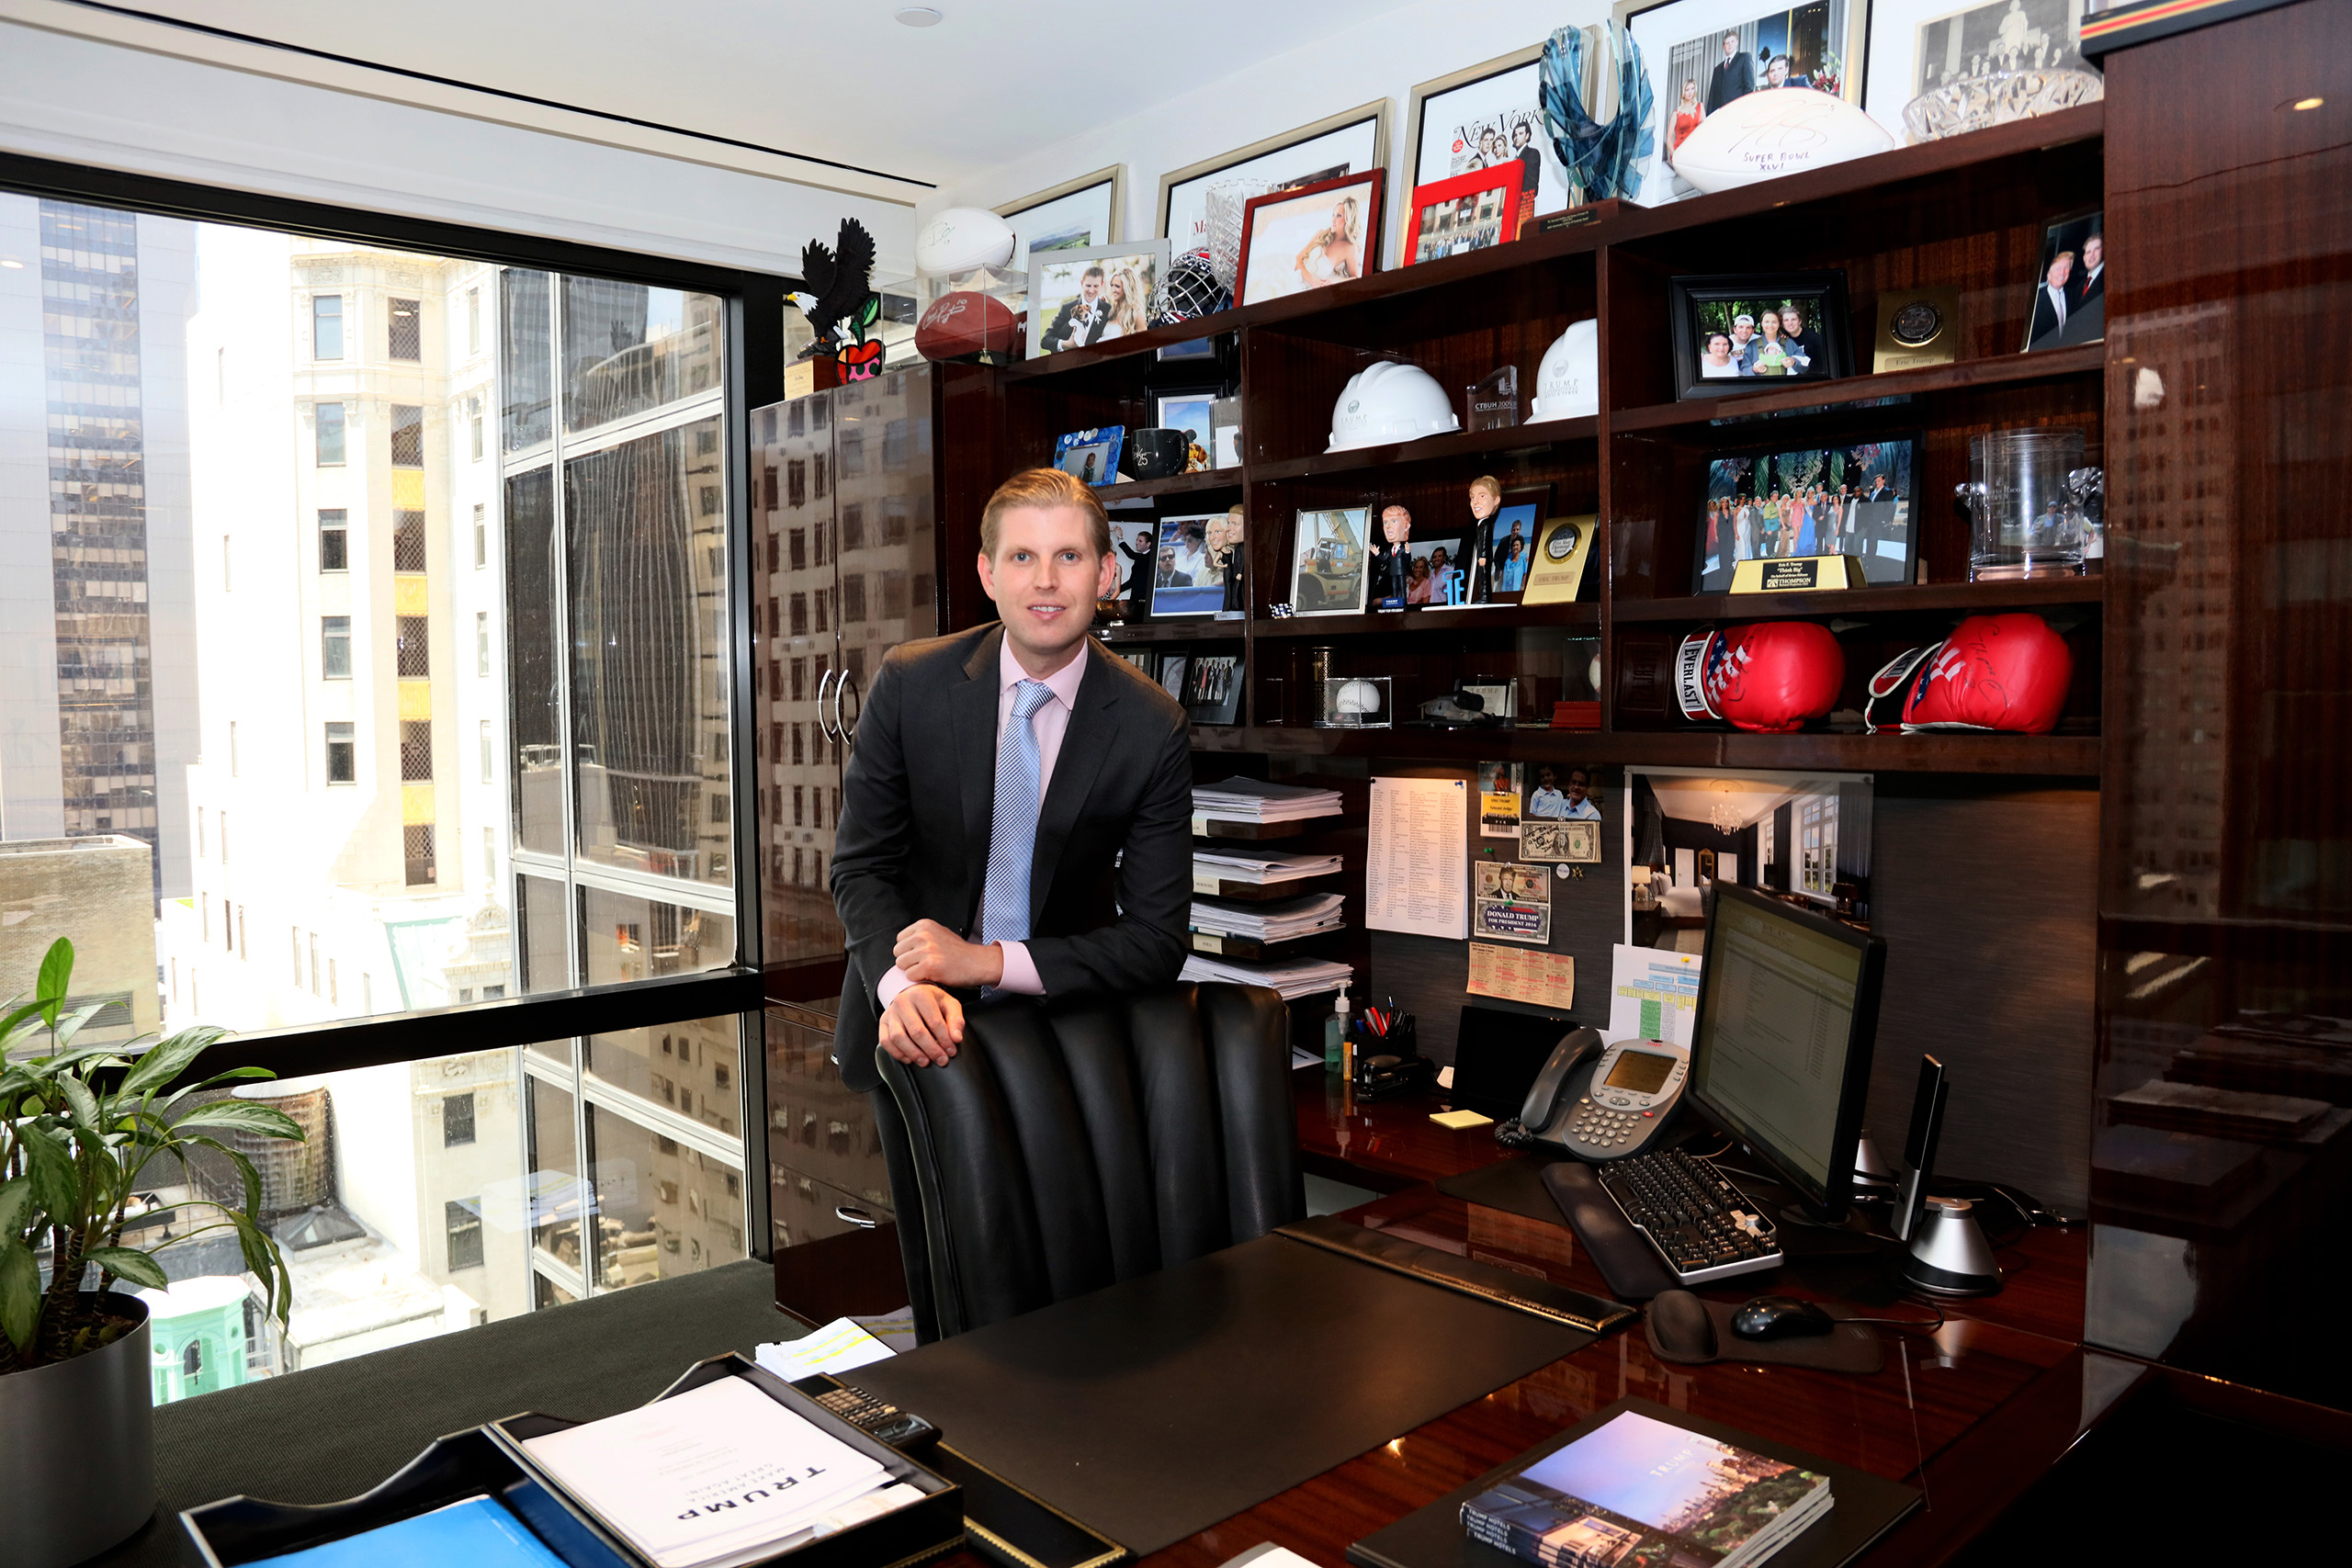 Eric Trump in his office at Trump Tower in New York City on July 6, 2016.